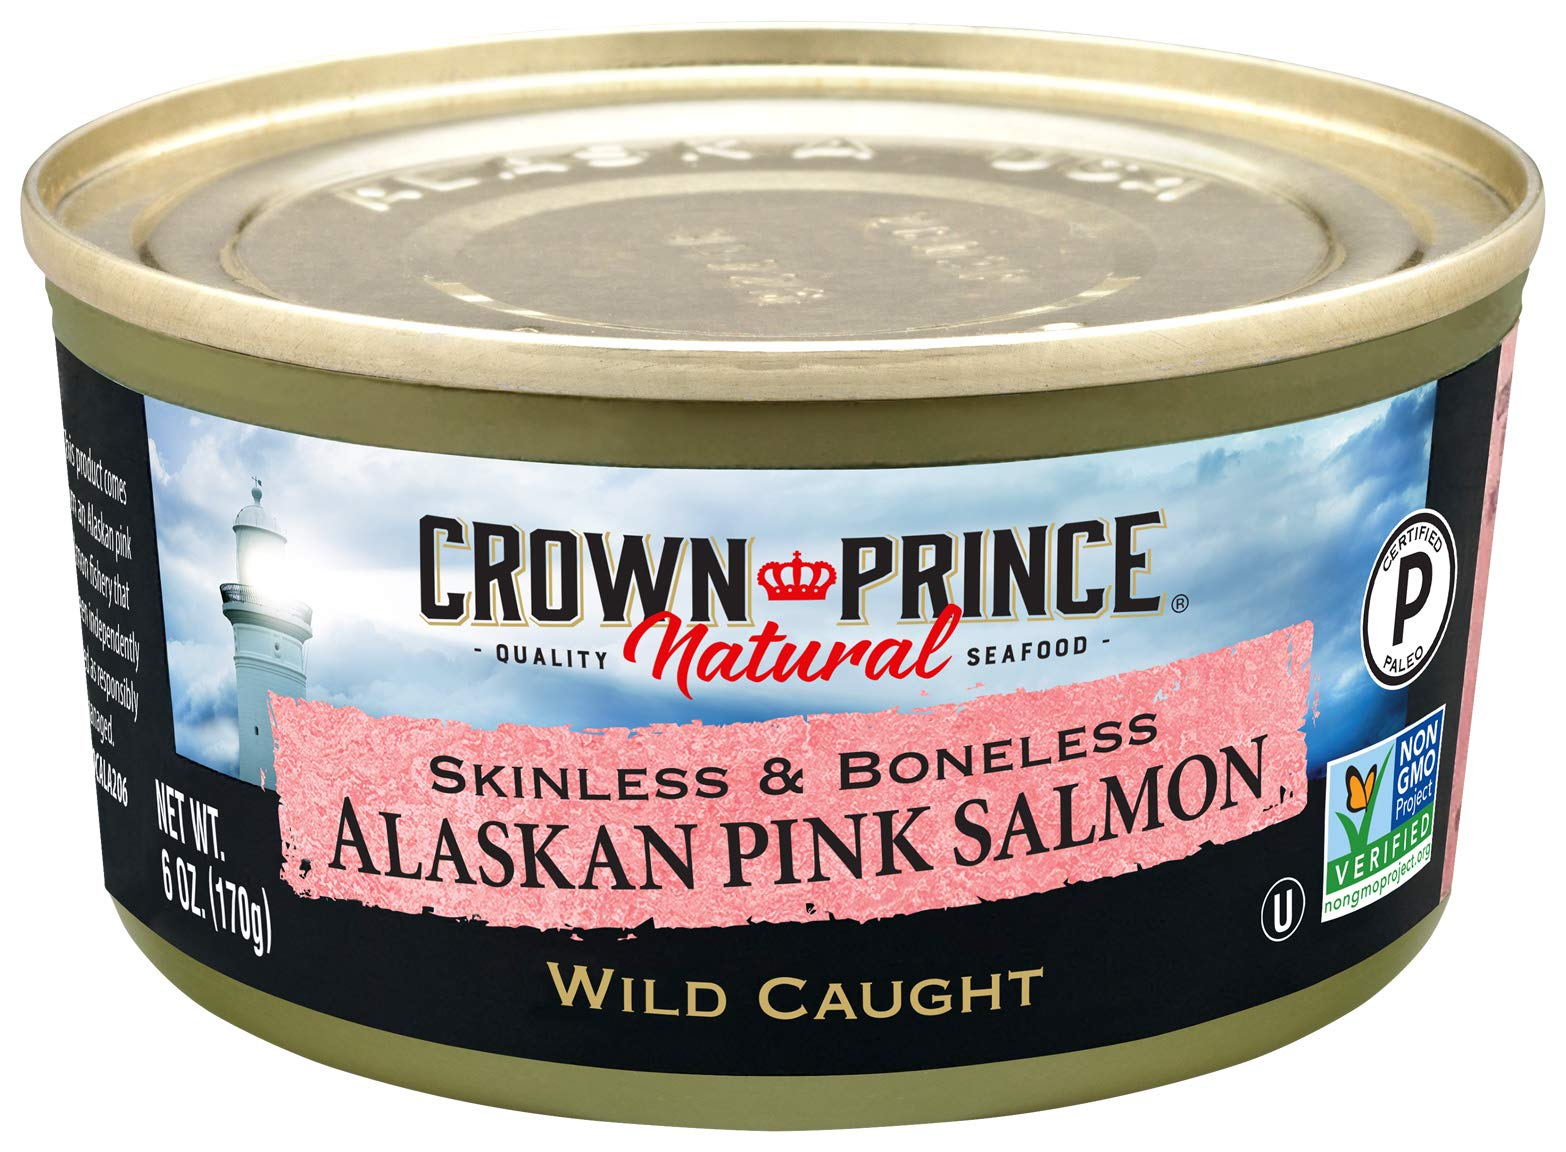 Crown Prince Natural Skinless & Boneless Alaskan Pink Salmon, 6-Ounce Cans (Pack of 12) by Crown Prince